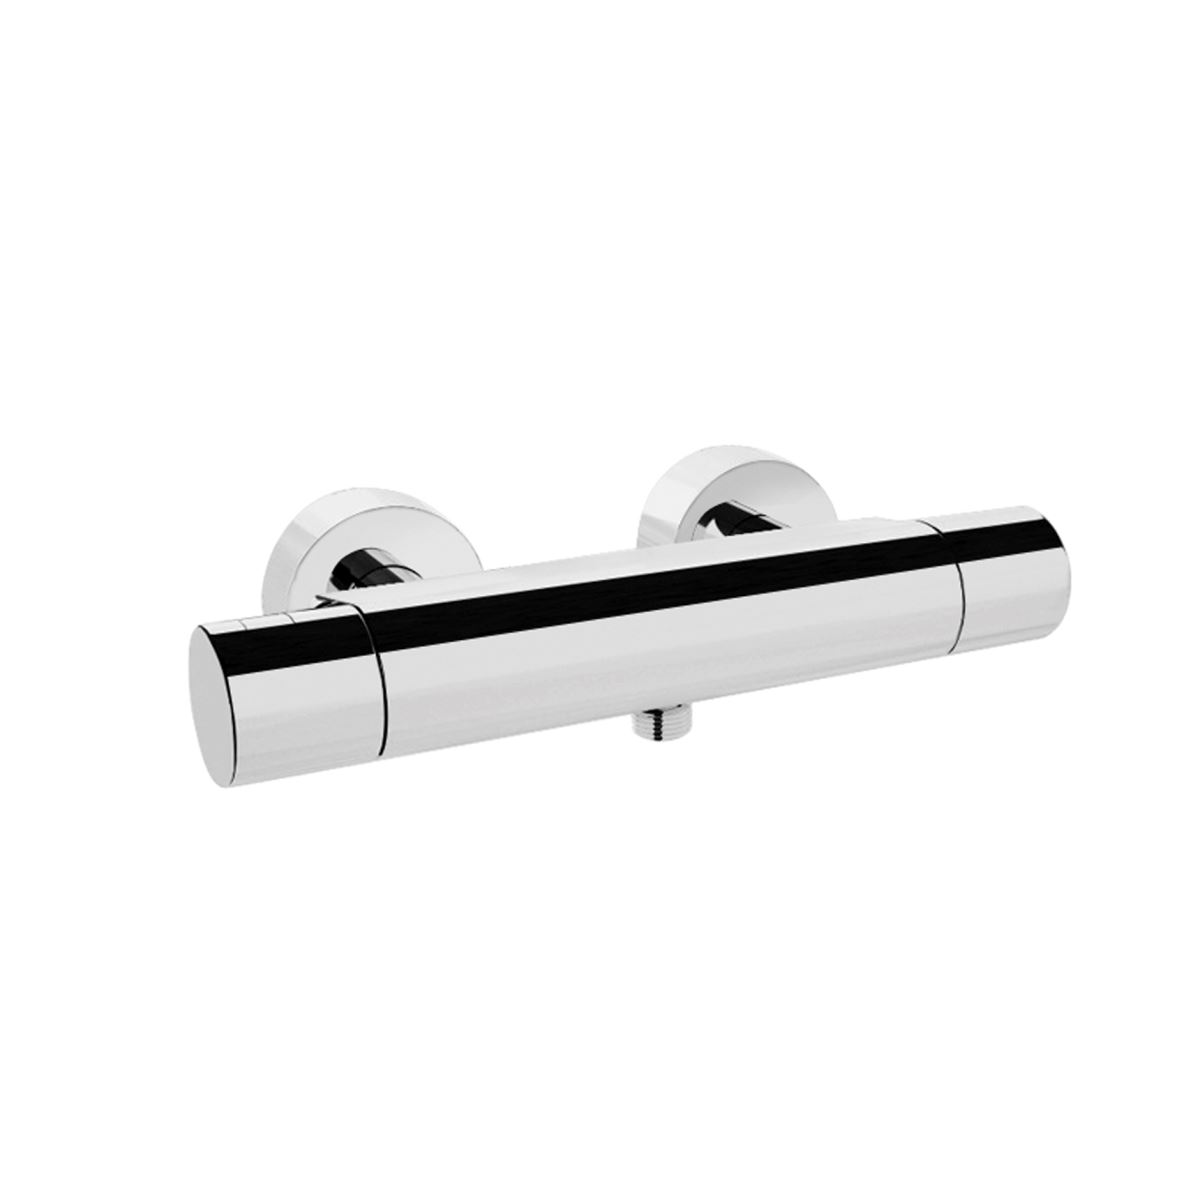 X-Line Thermostatic Shower Mixer